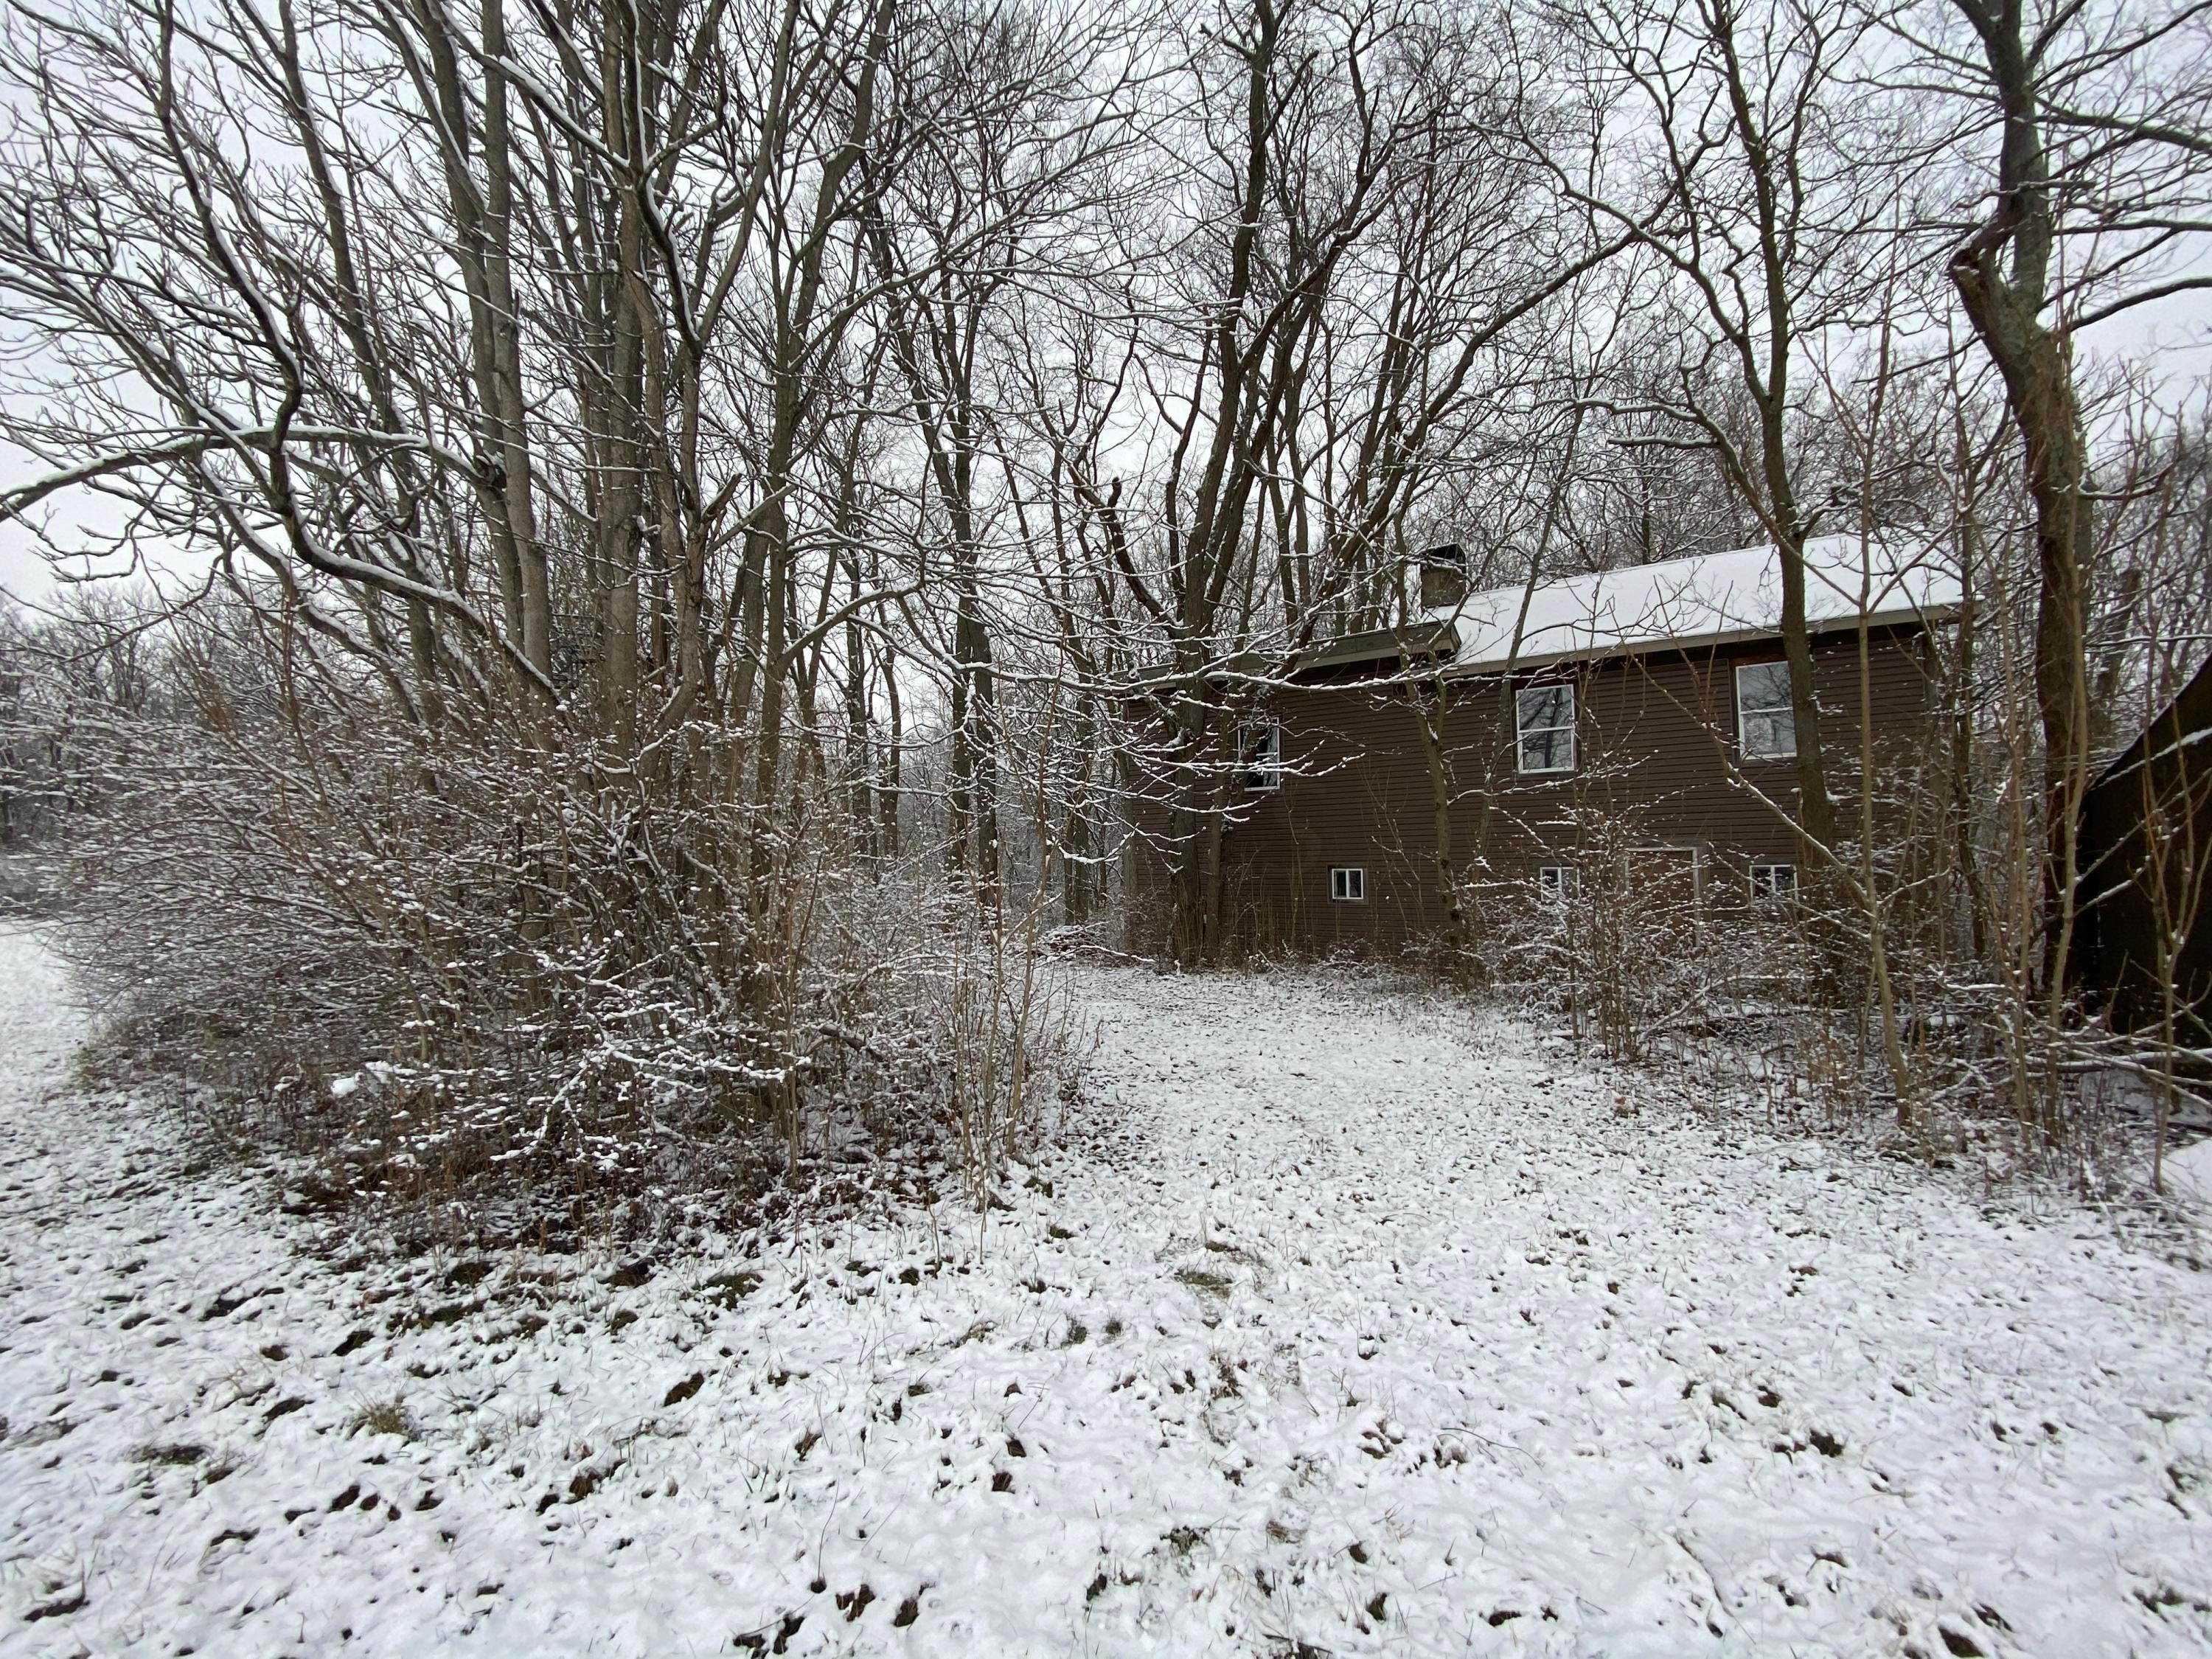 9300 Geirich Road, Galloway, Ohio 43119, 2 Bedrooms Bedrooms, ,1 BathroomBathrooms,Residential,For Sale,Geirich,220043457